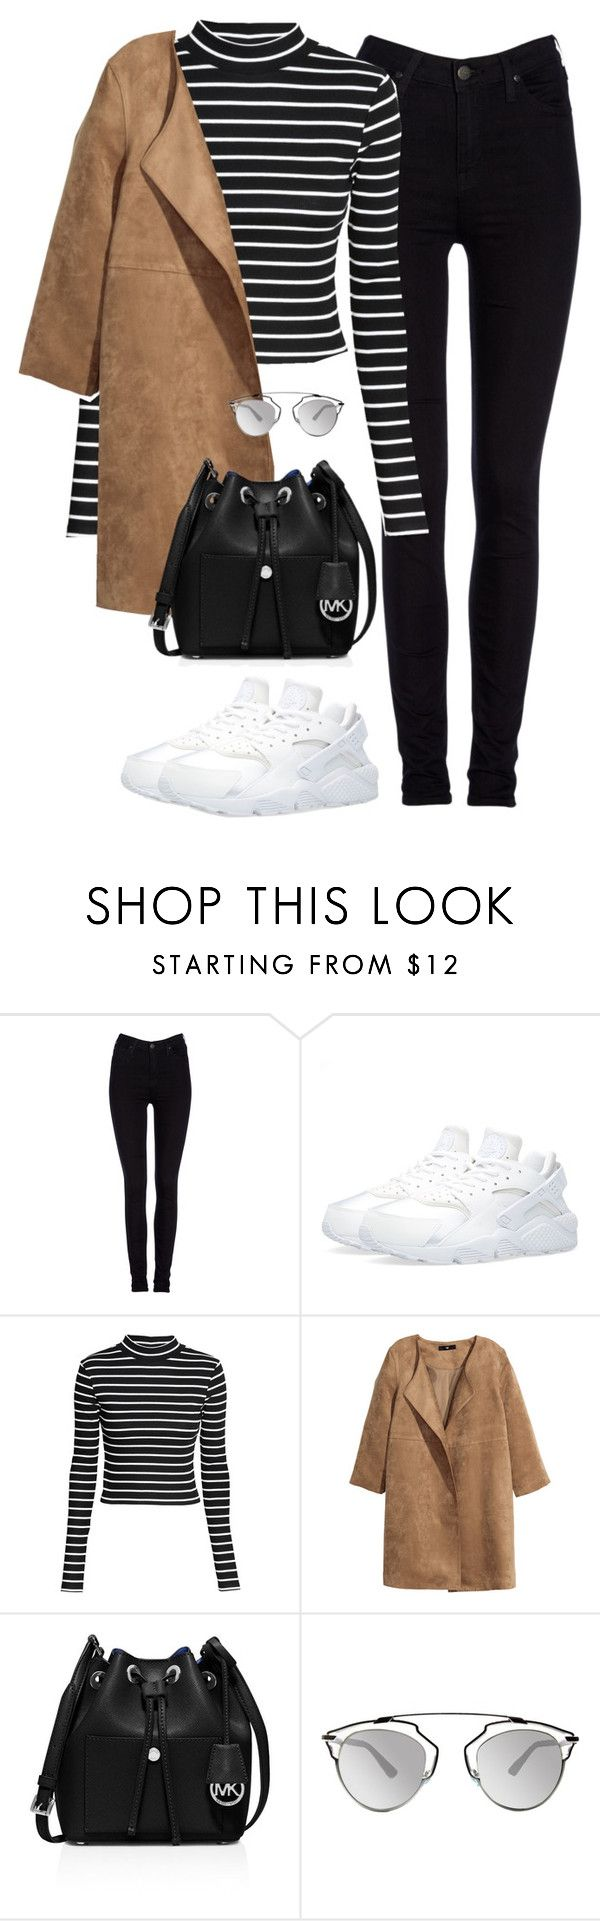 """Untitled #467"" by christyandnef on Polyvore featuring Lee, NIKE, H&M, MICHAEL Michael Kors, Christian Dior, women's clothing, women, female, woman and misses"